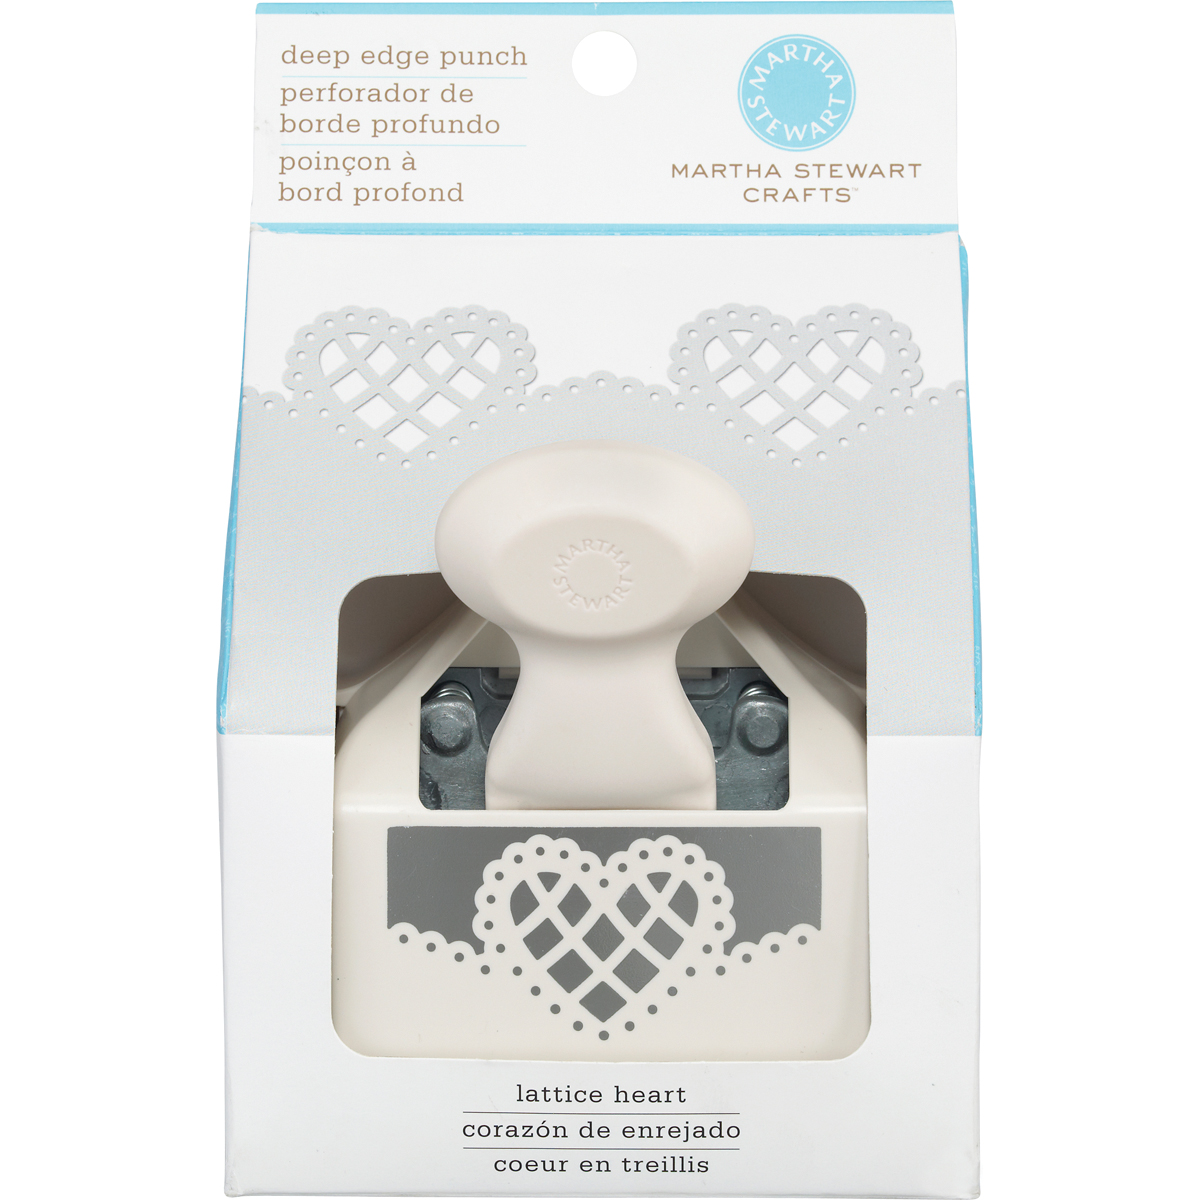 Martha Stewart Crafts Deep Edge Punch, Lattice Heart